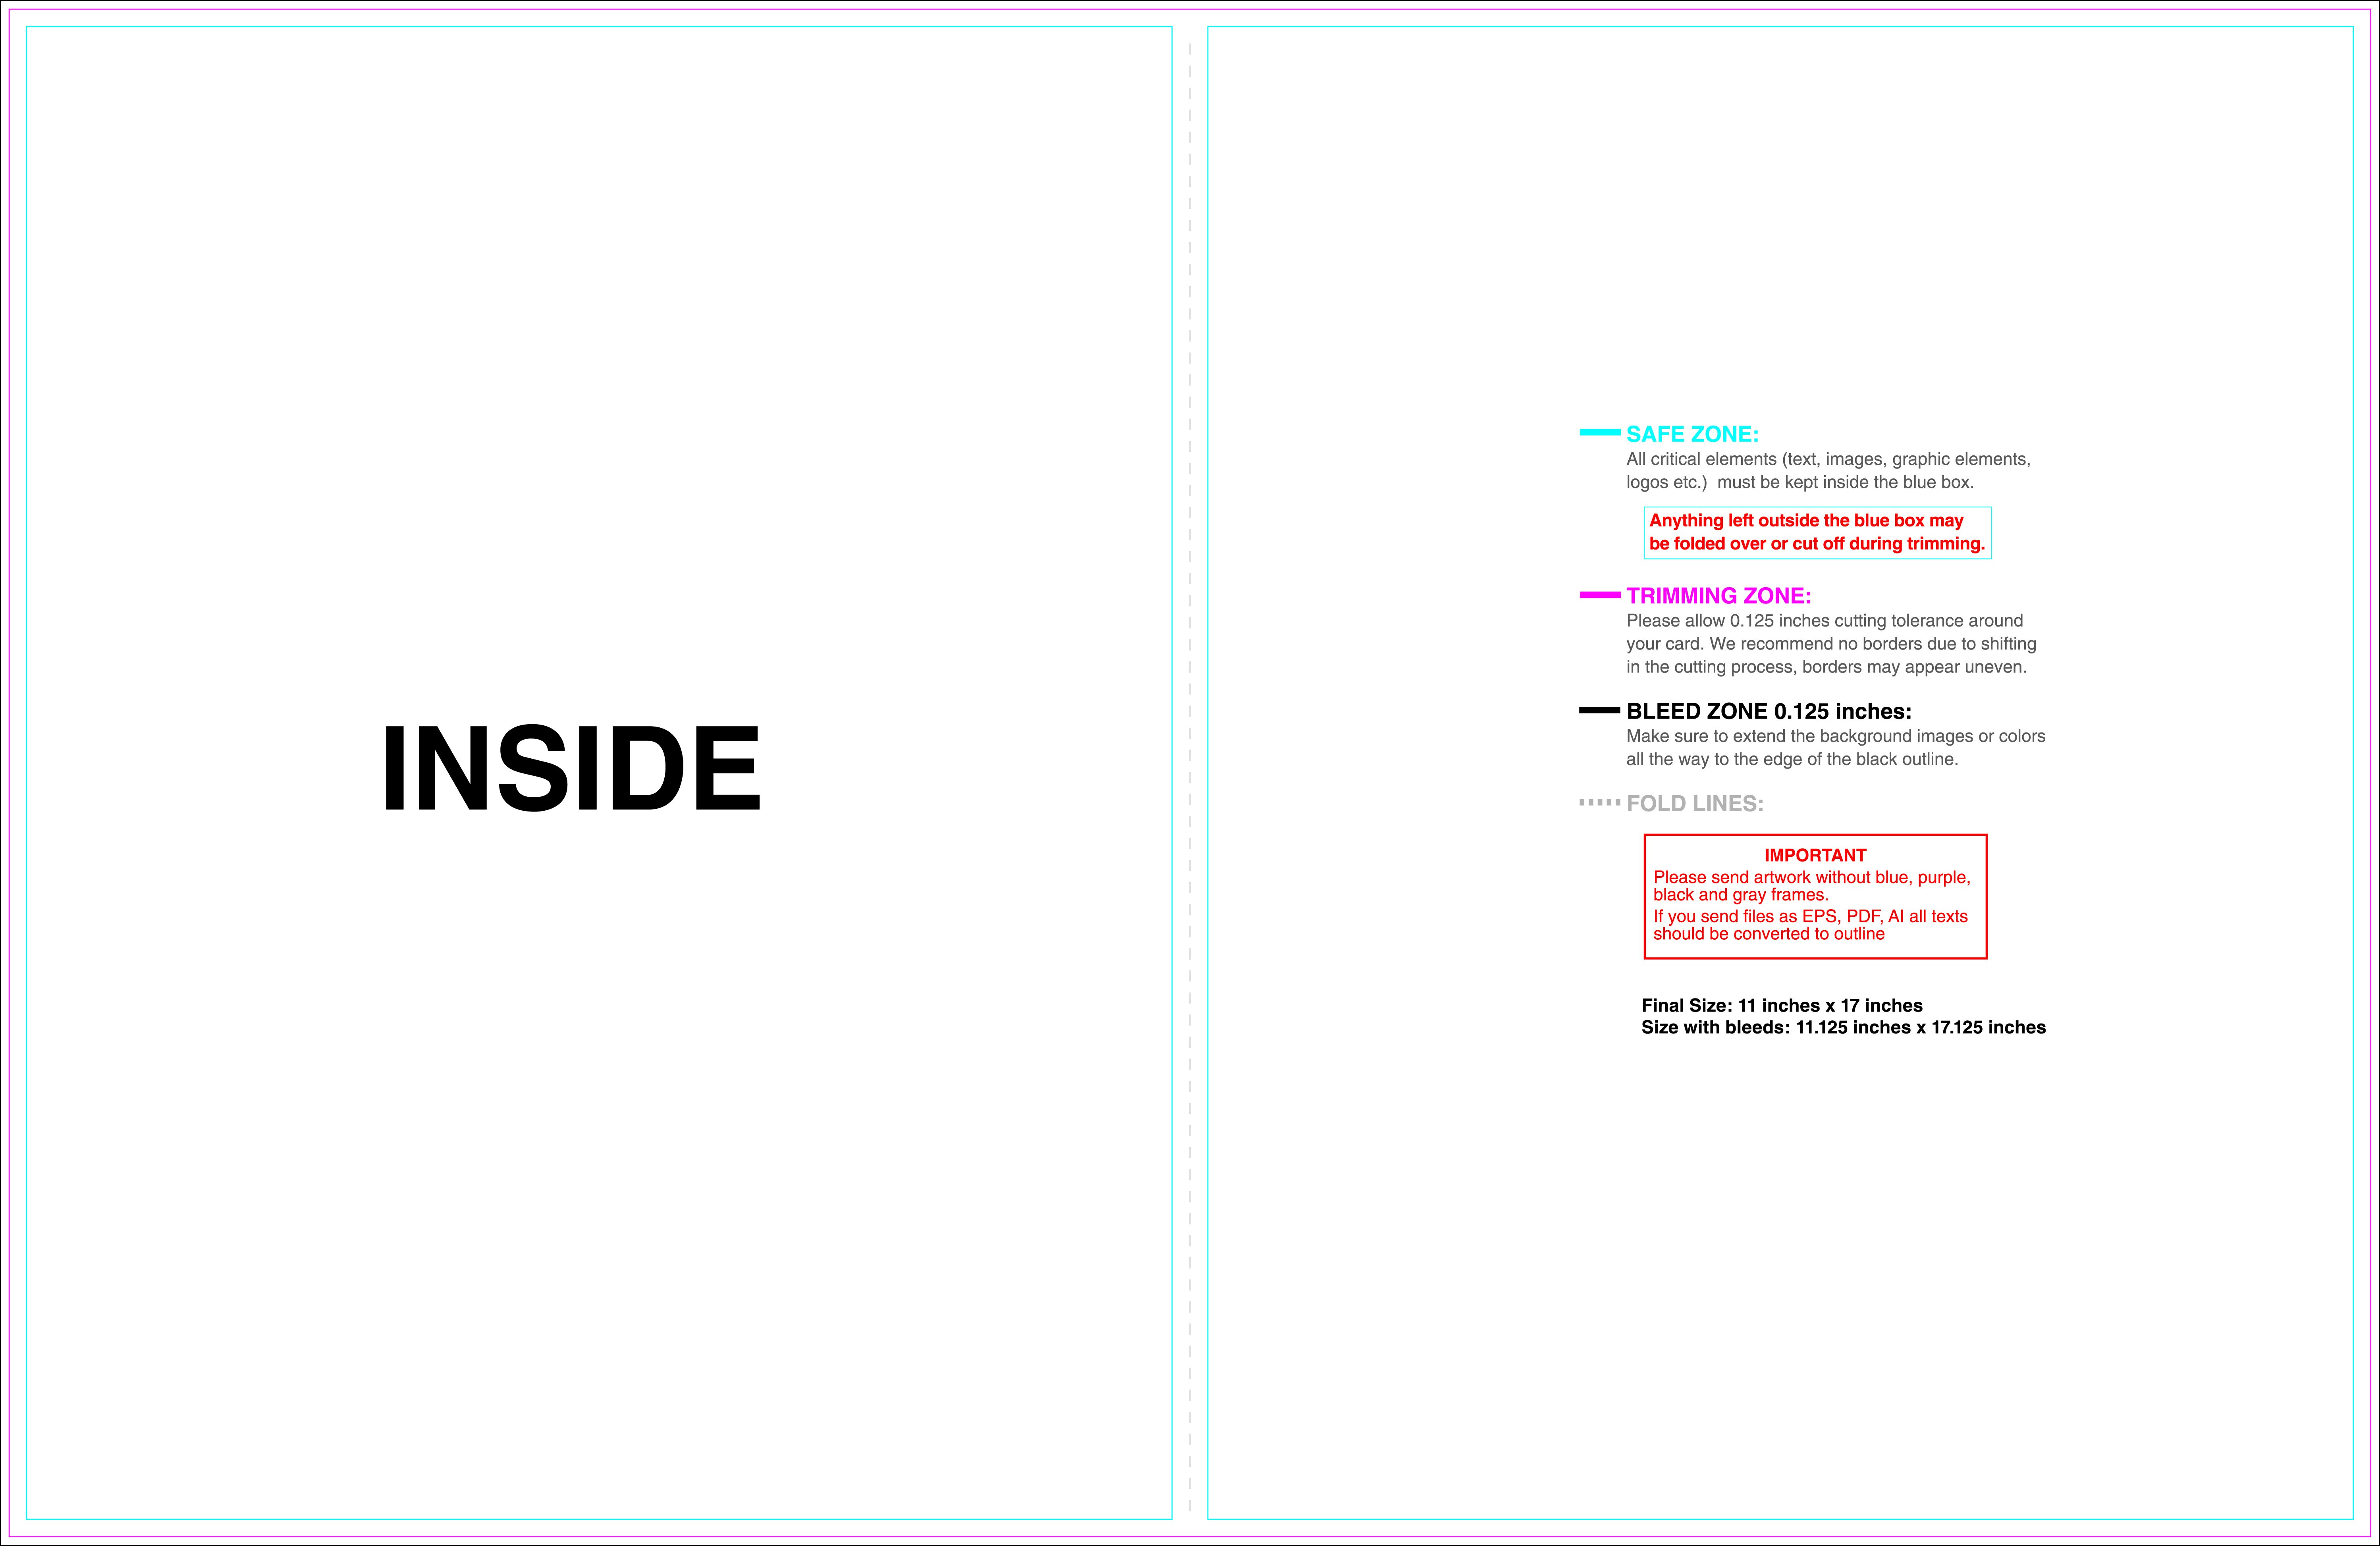 8 5 x 11 envelope template - 8 5 x 11 envelope template software free download